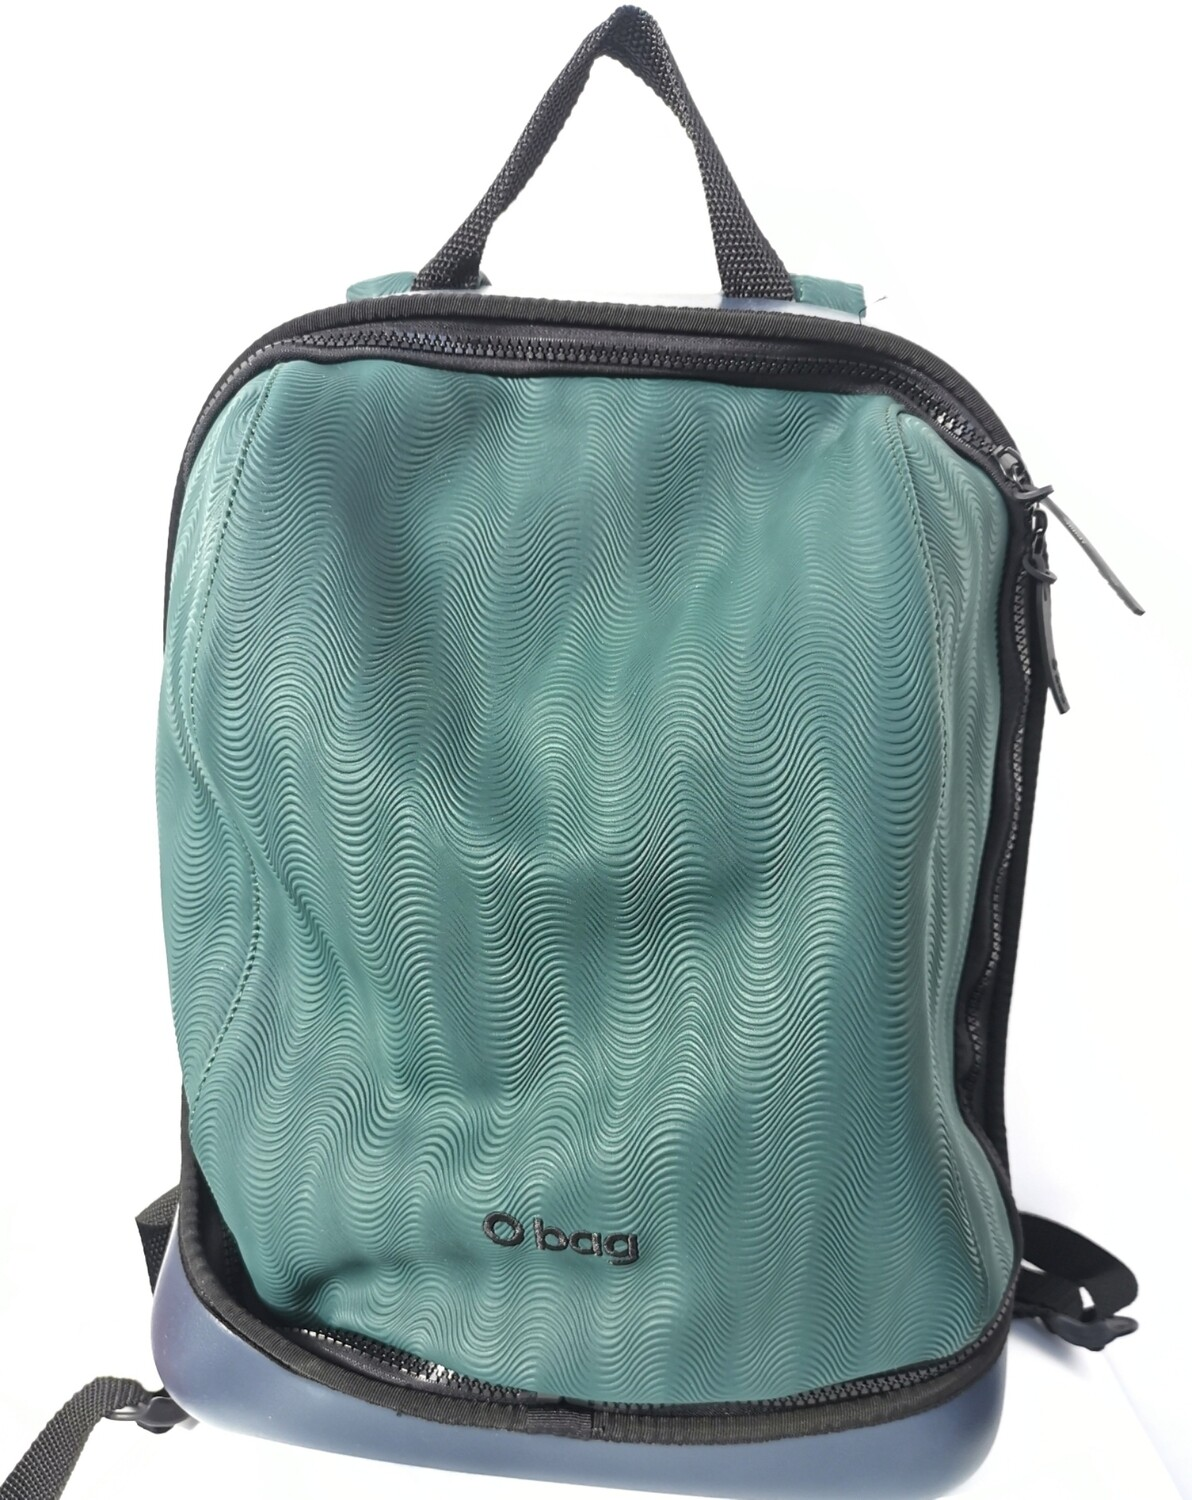 O bag backpack  in rubberized fabric